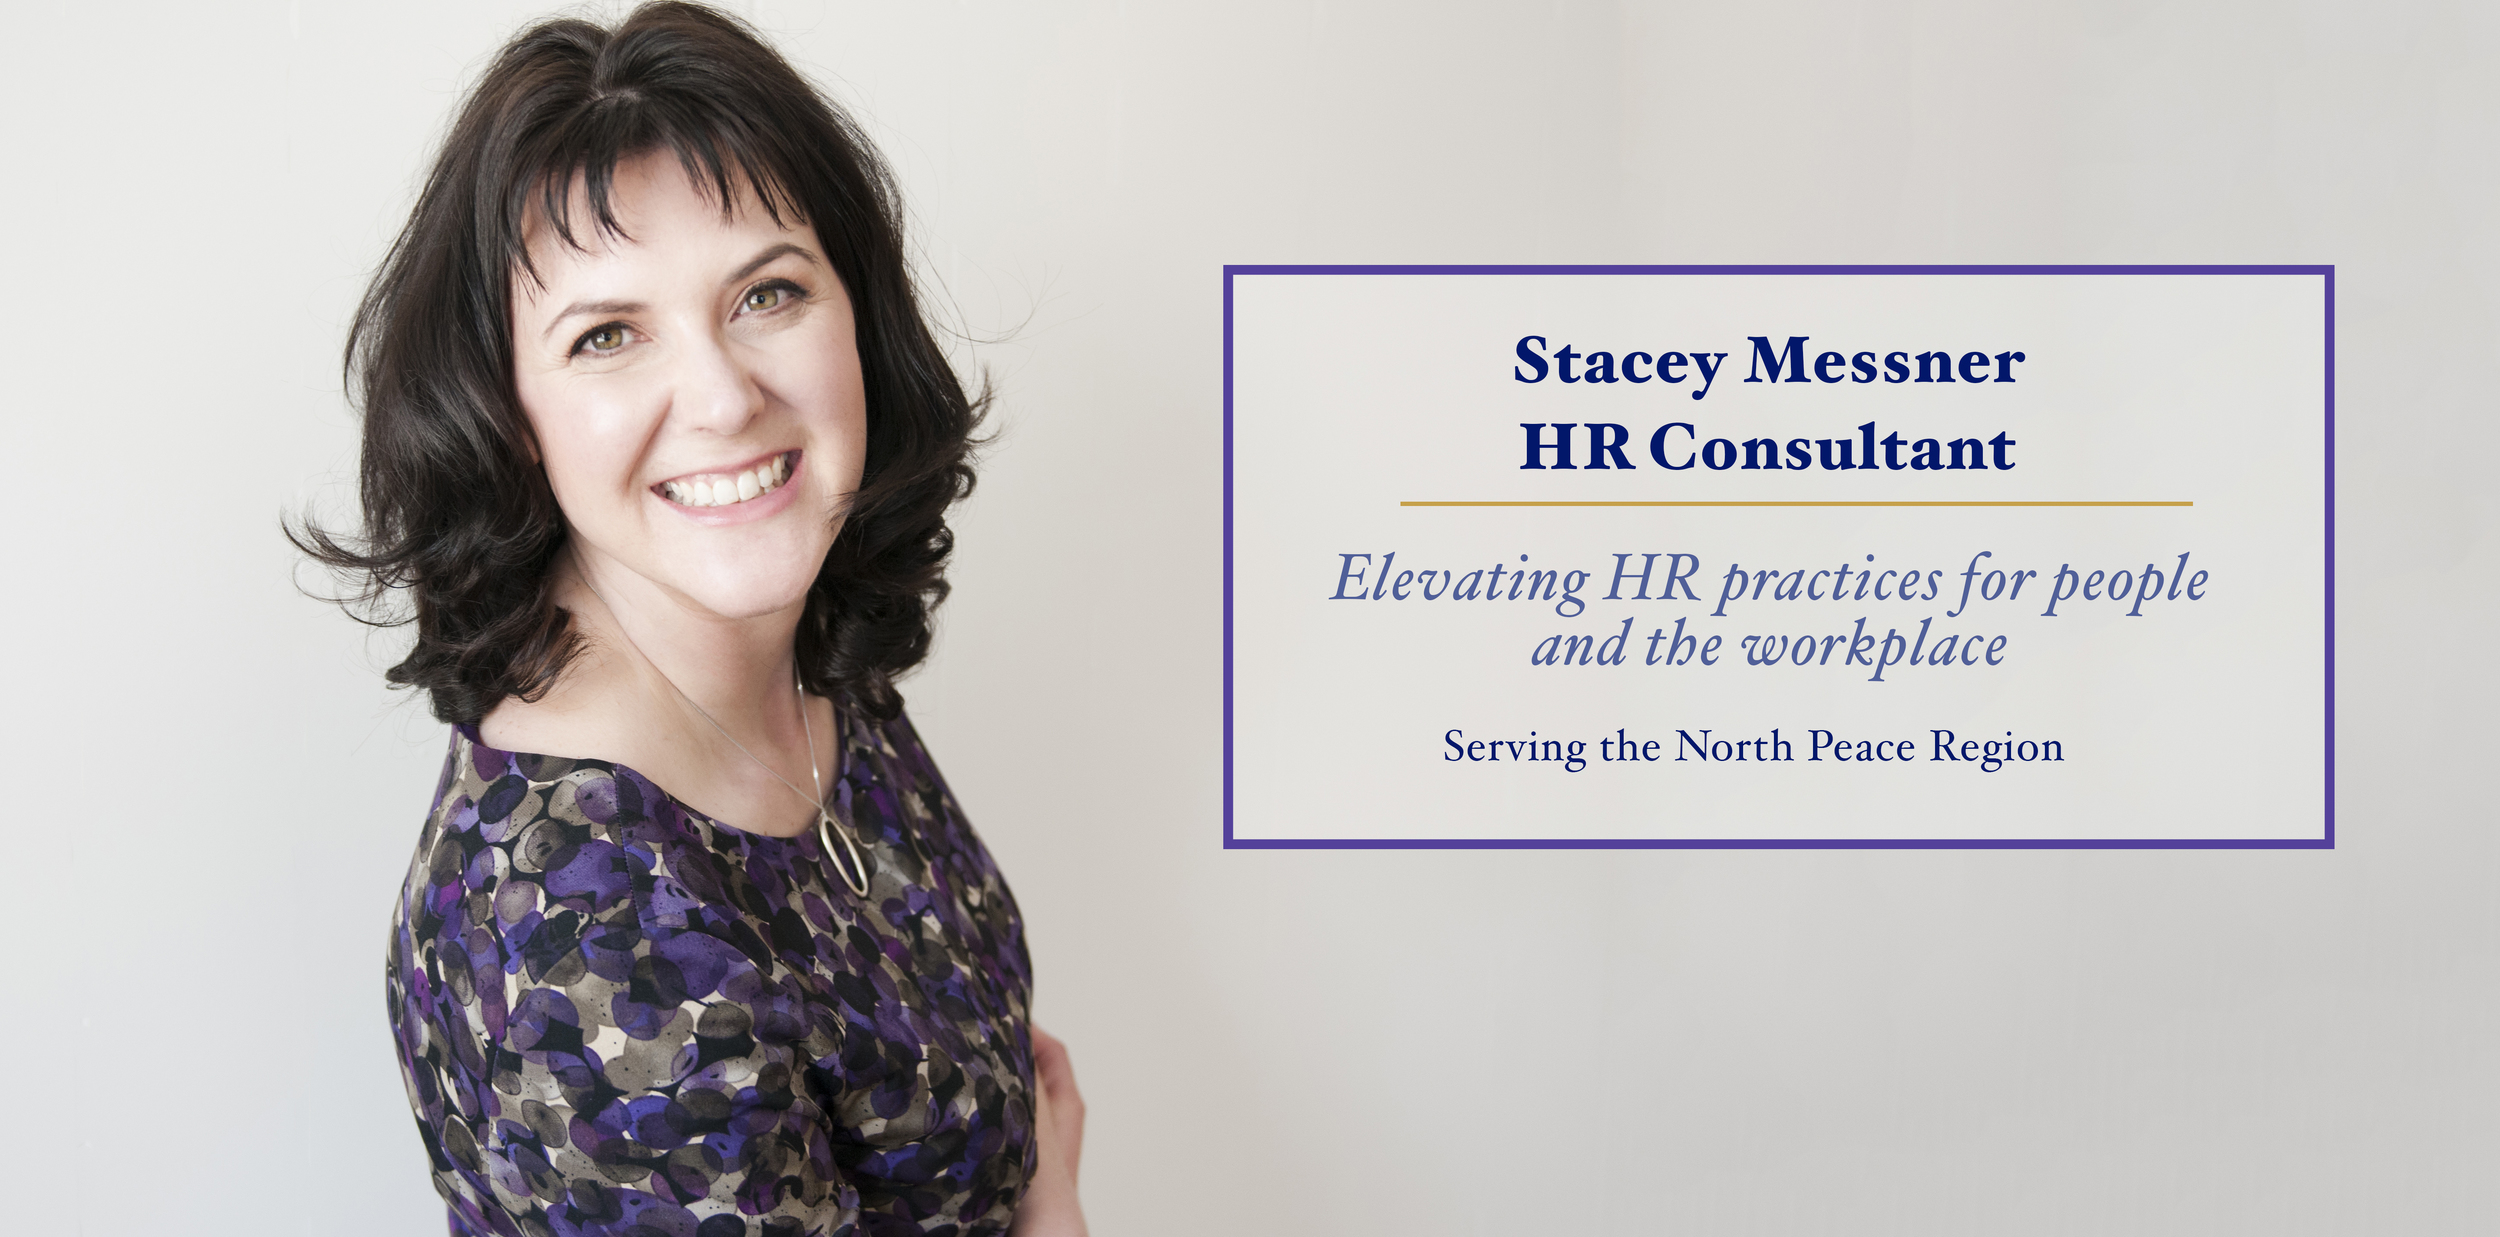 Stacey HR Strategist and Coach for Business Owners, Job Seekers & HR departments Located in Peace River, Alberta